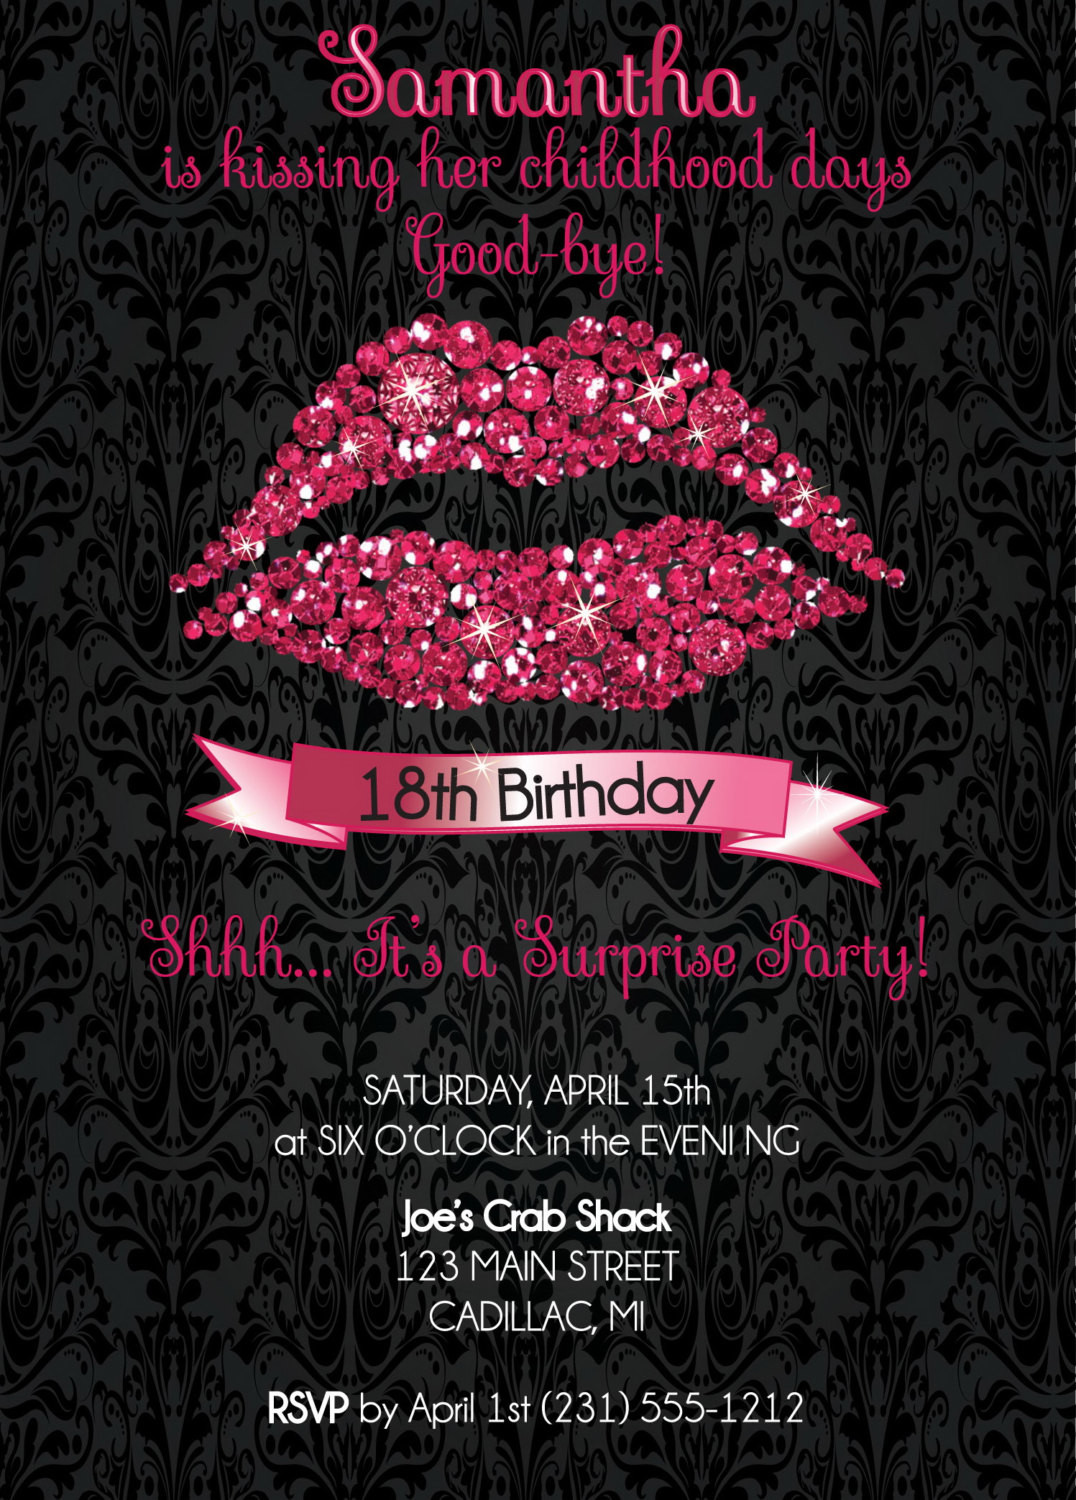 Best ideas about 18th Birthday Party Invitations . Save or Pin 18th Birthday Invitation 18th Birthday Party Invitation Hot Now.